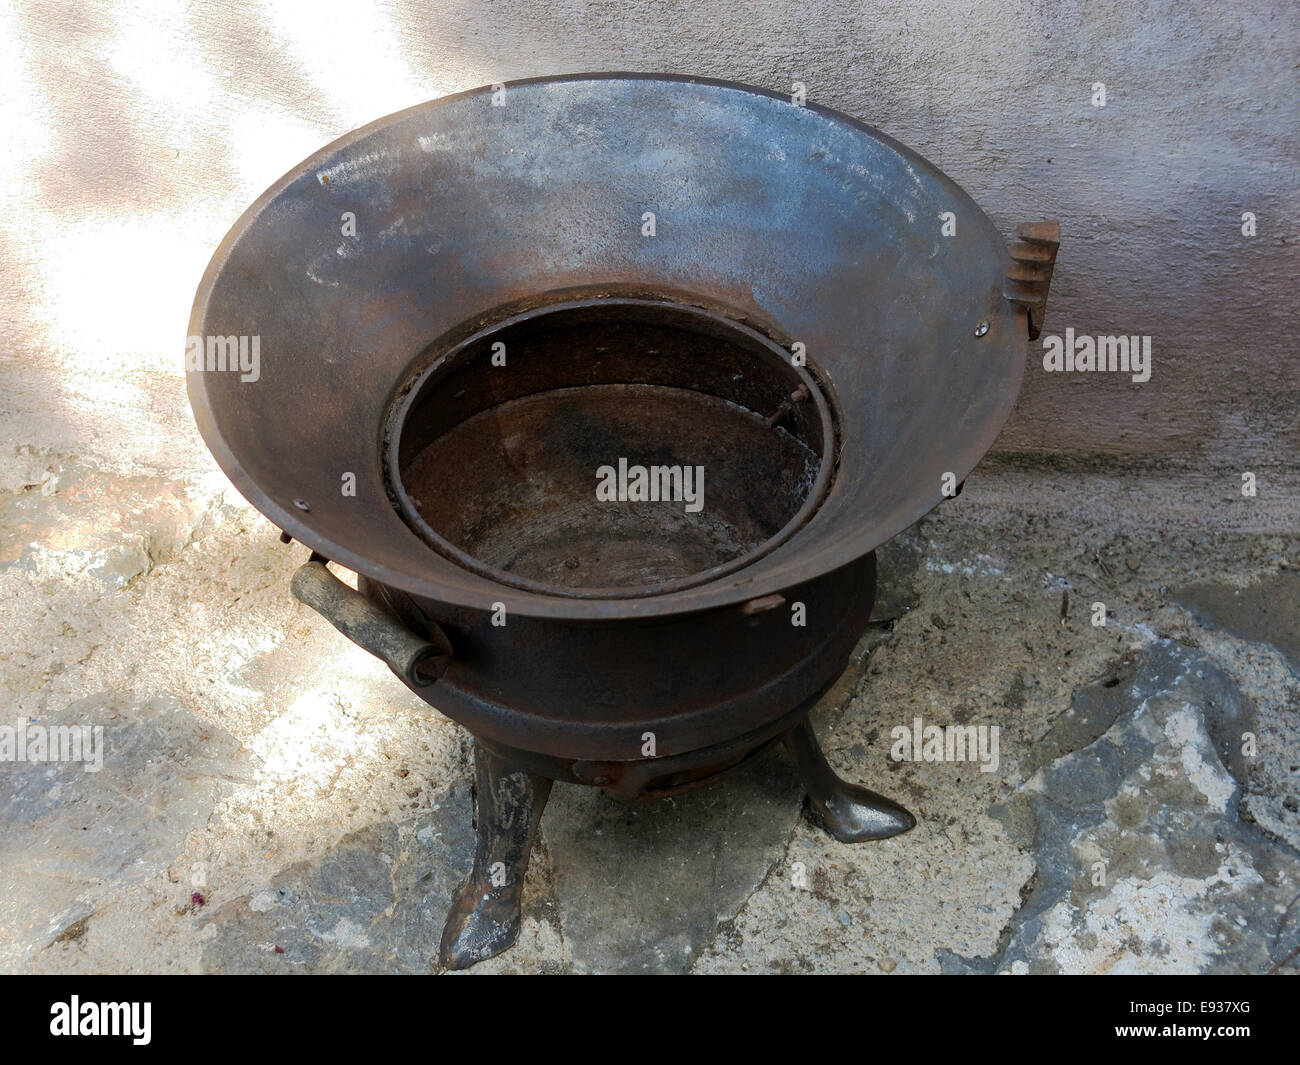 Restored vintage coal burning heater. - Stock Image